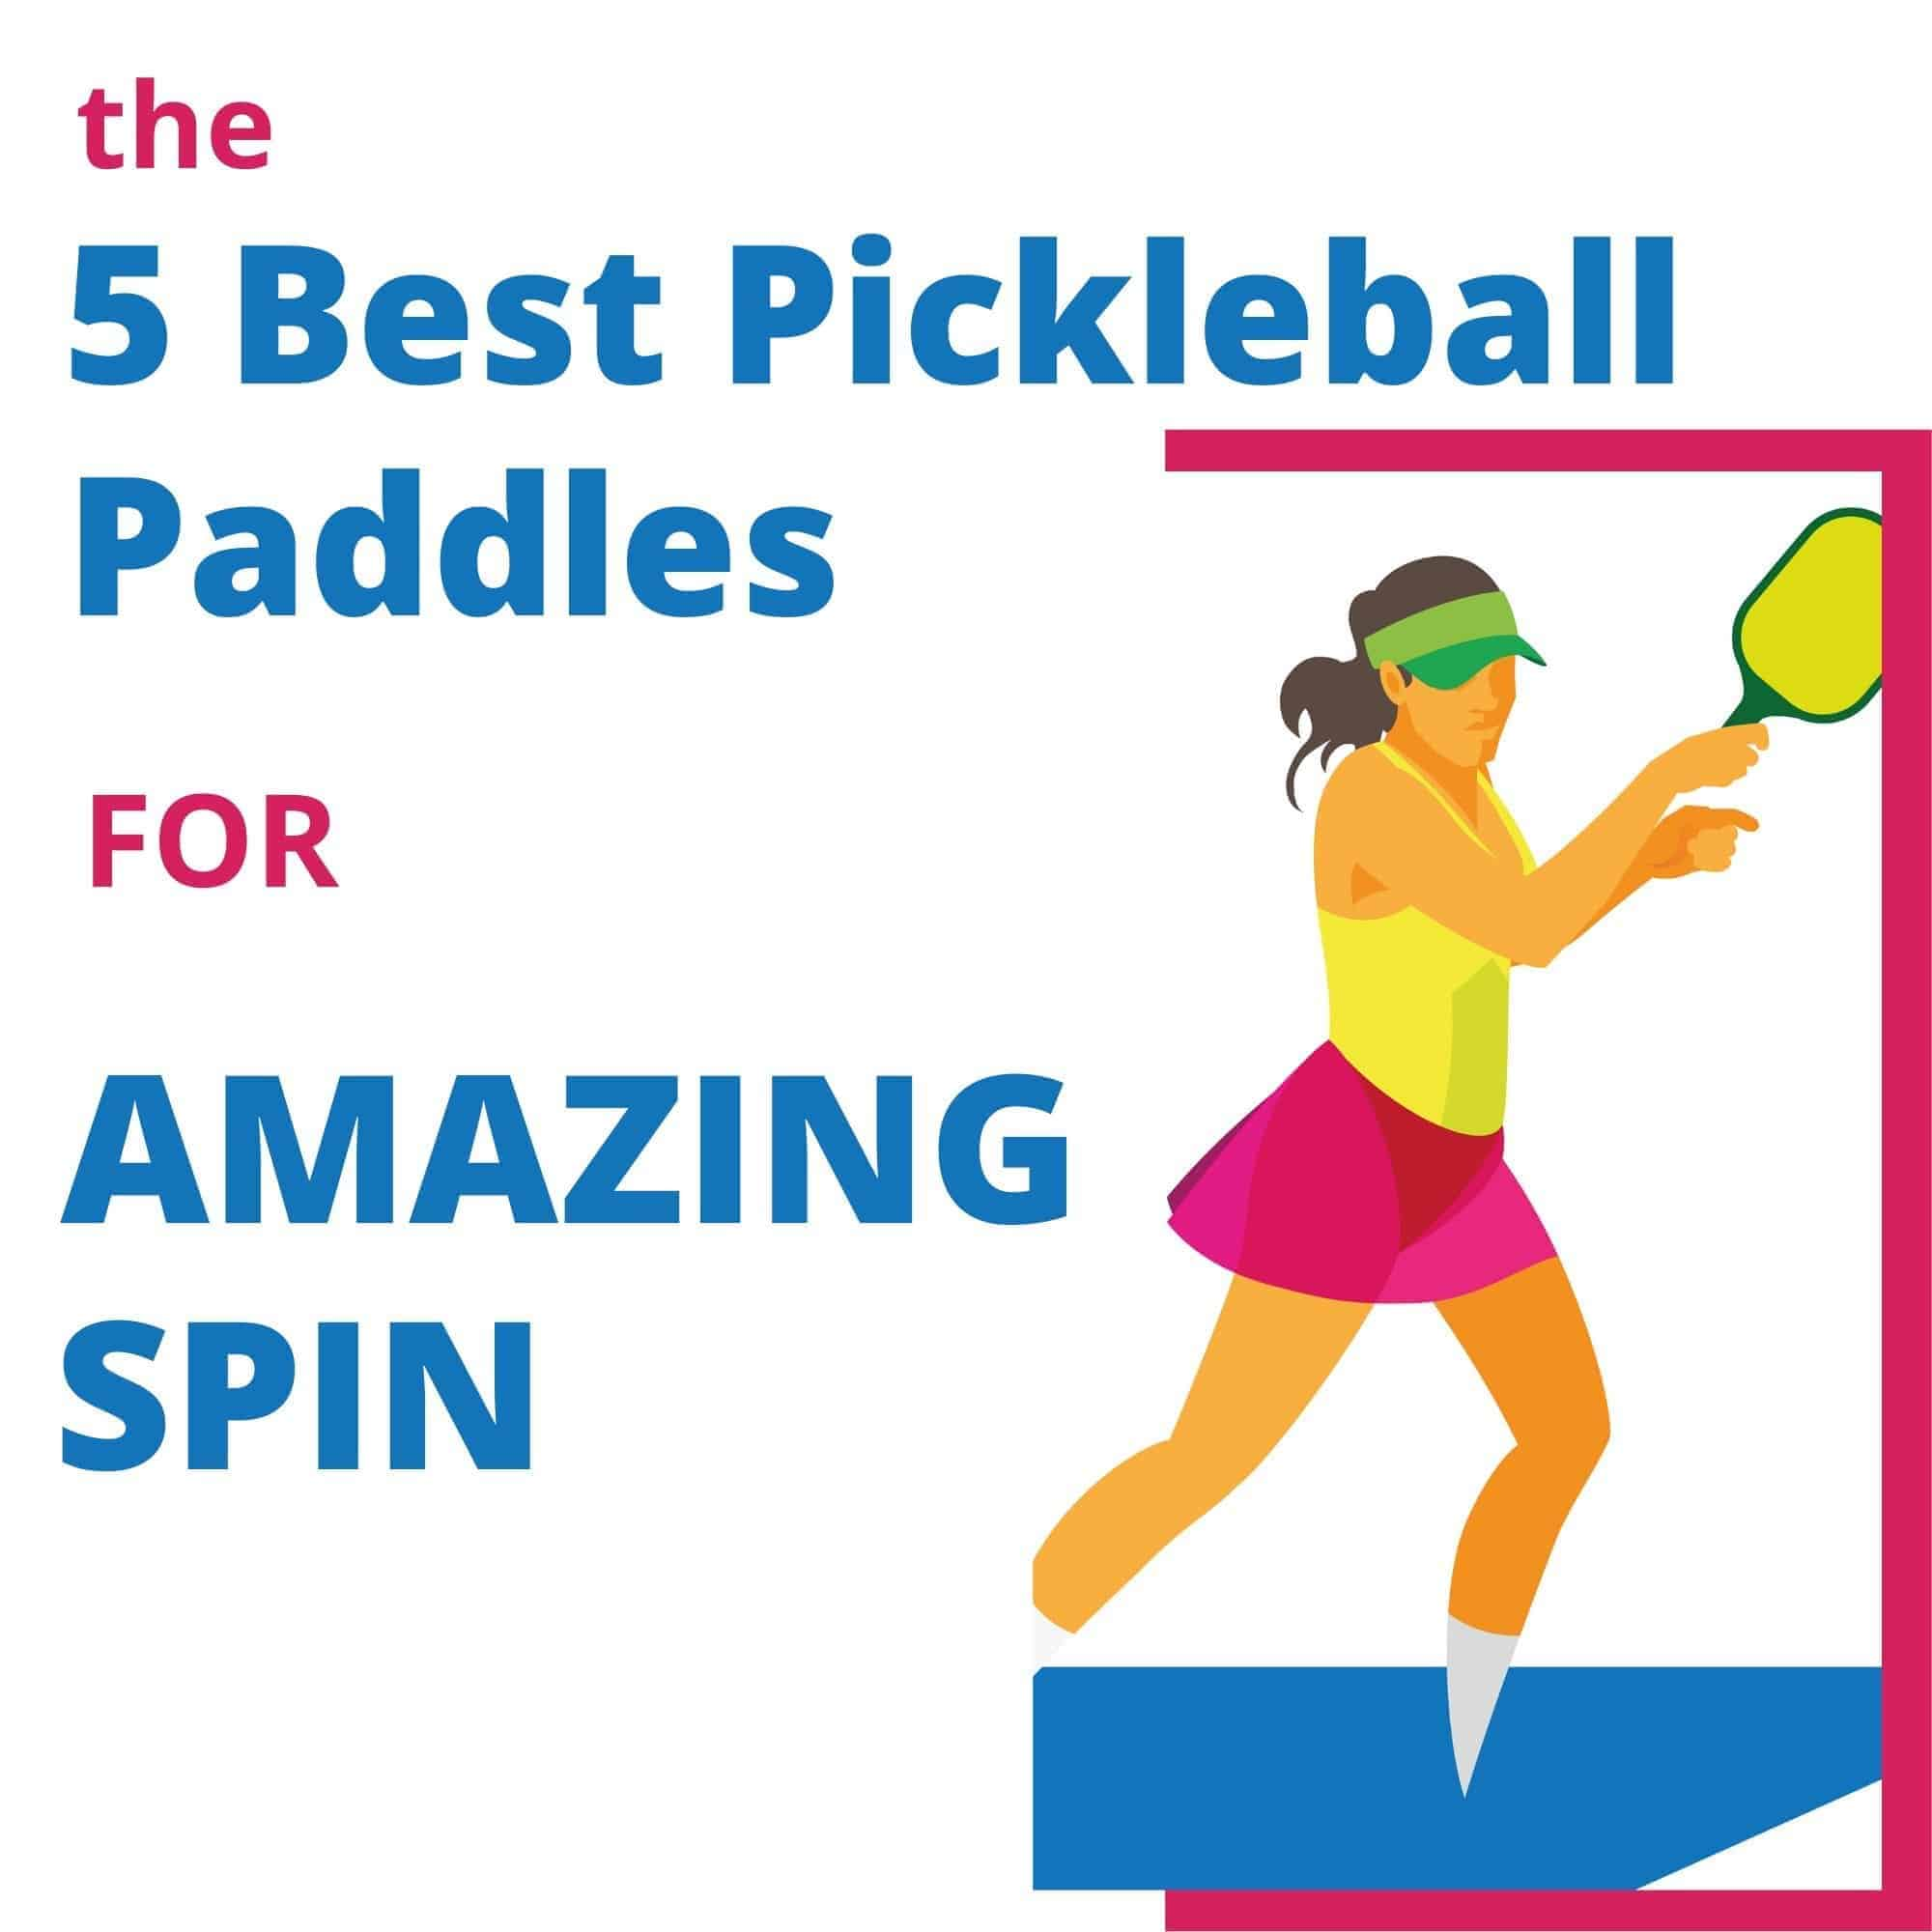 best pickleball paddles for spin